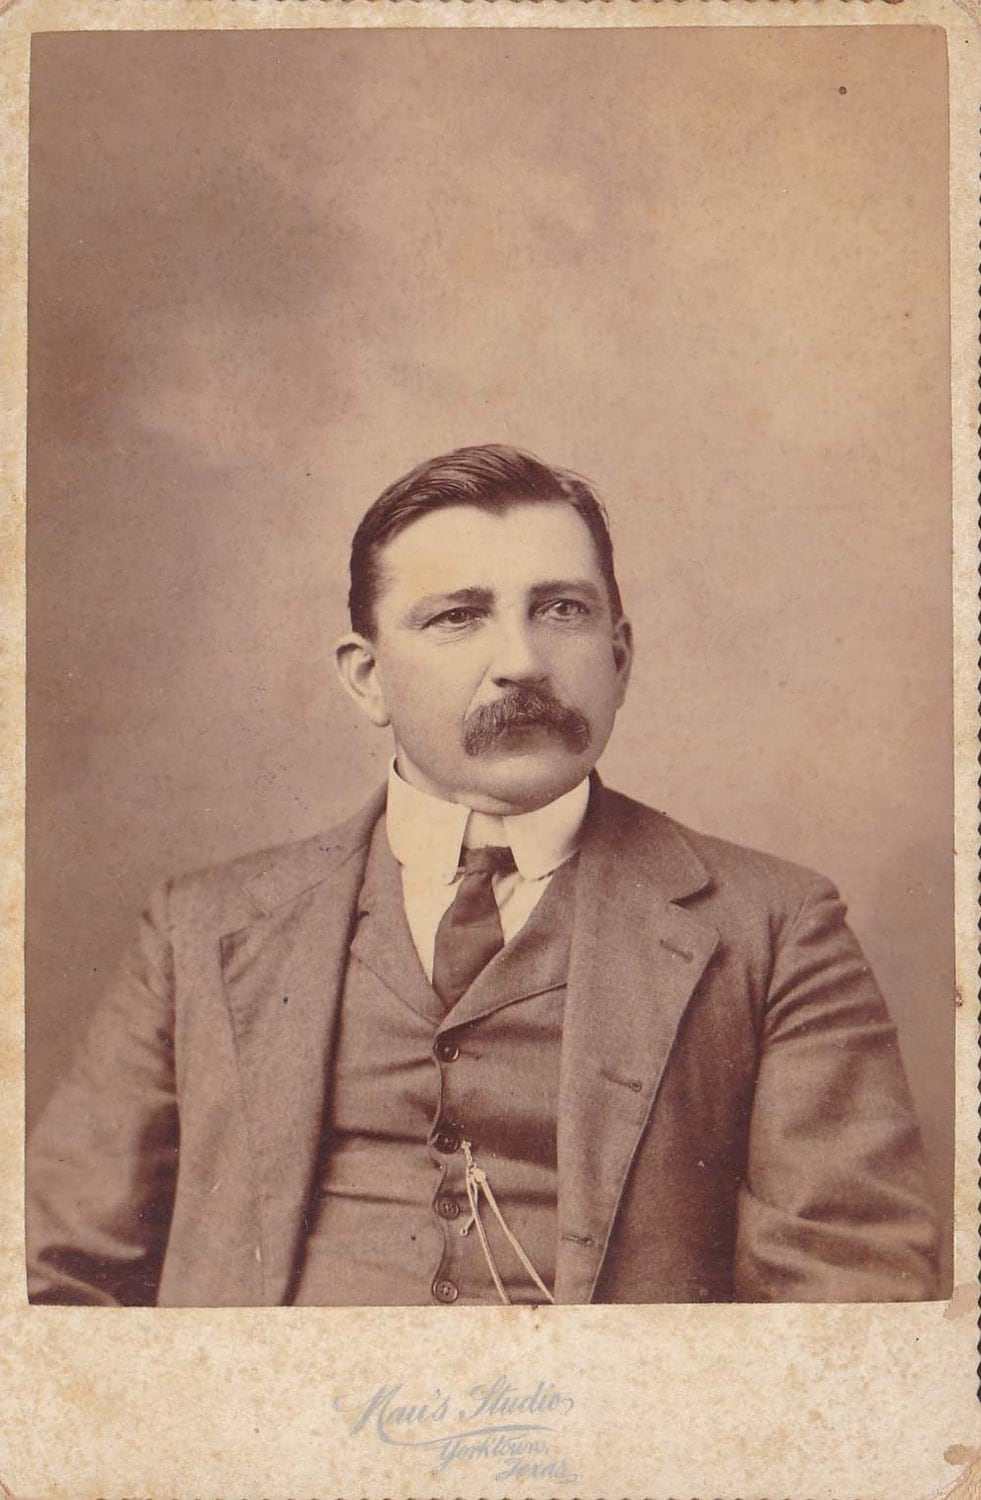 Wonderful Antique Cabinet Card from the Late 1800s-148